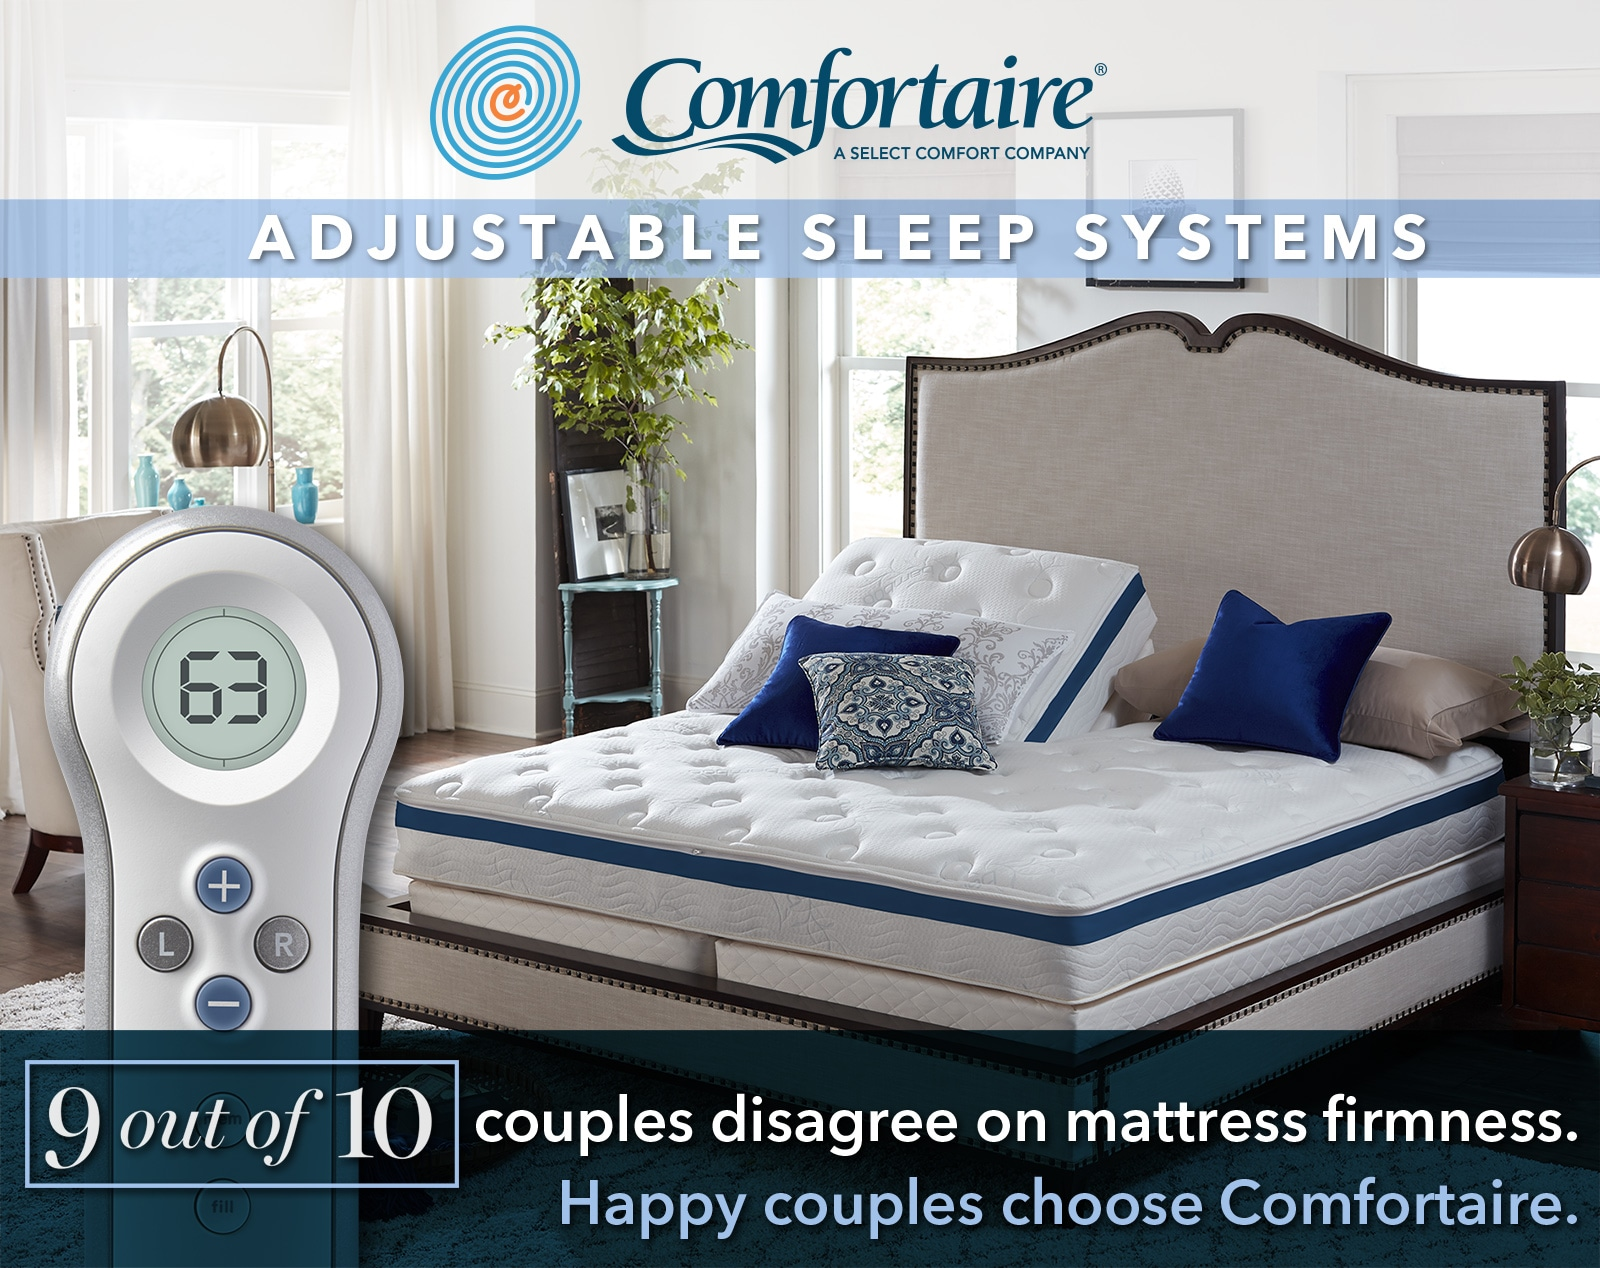 Hazouri Adjustable Beds: Home and Patio Specials on ALL Comfortaire® products are now in effect. - Happy Couples choose Comfortaire® adjuable beds.